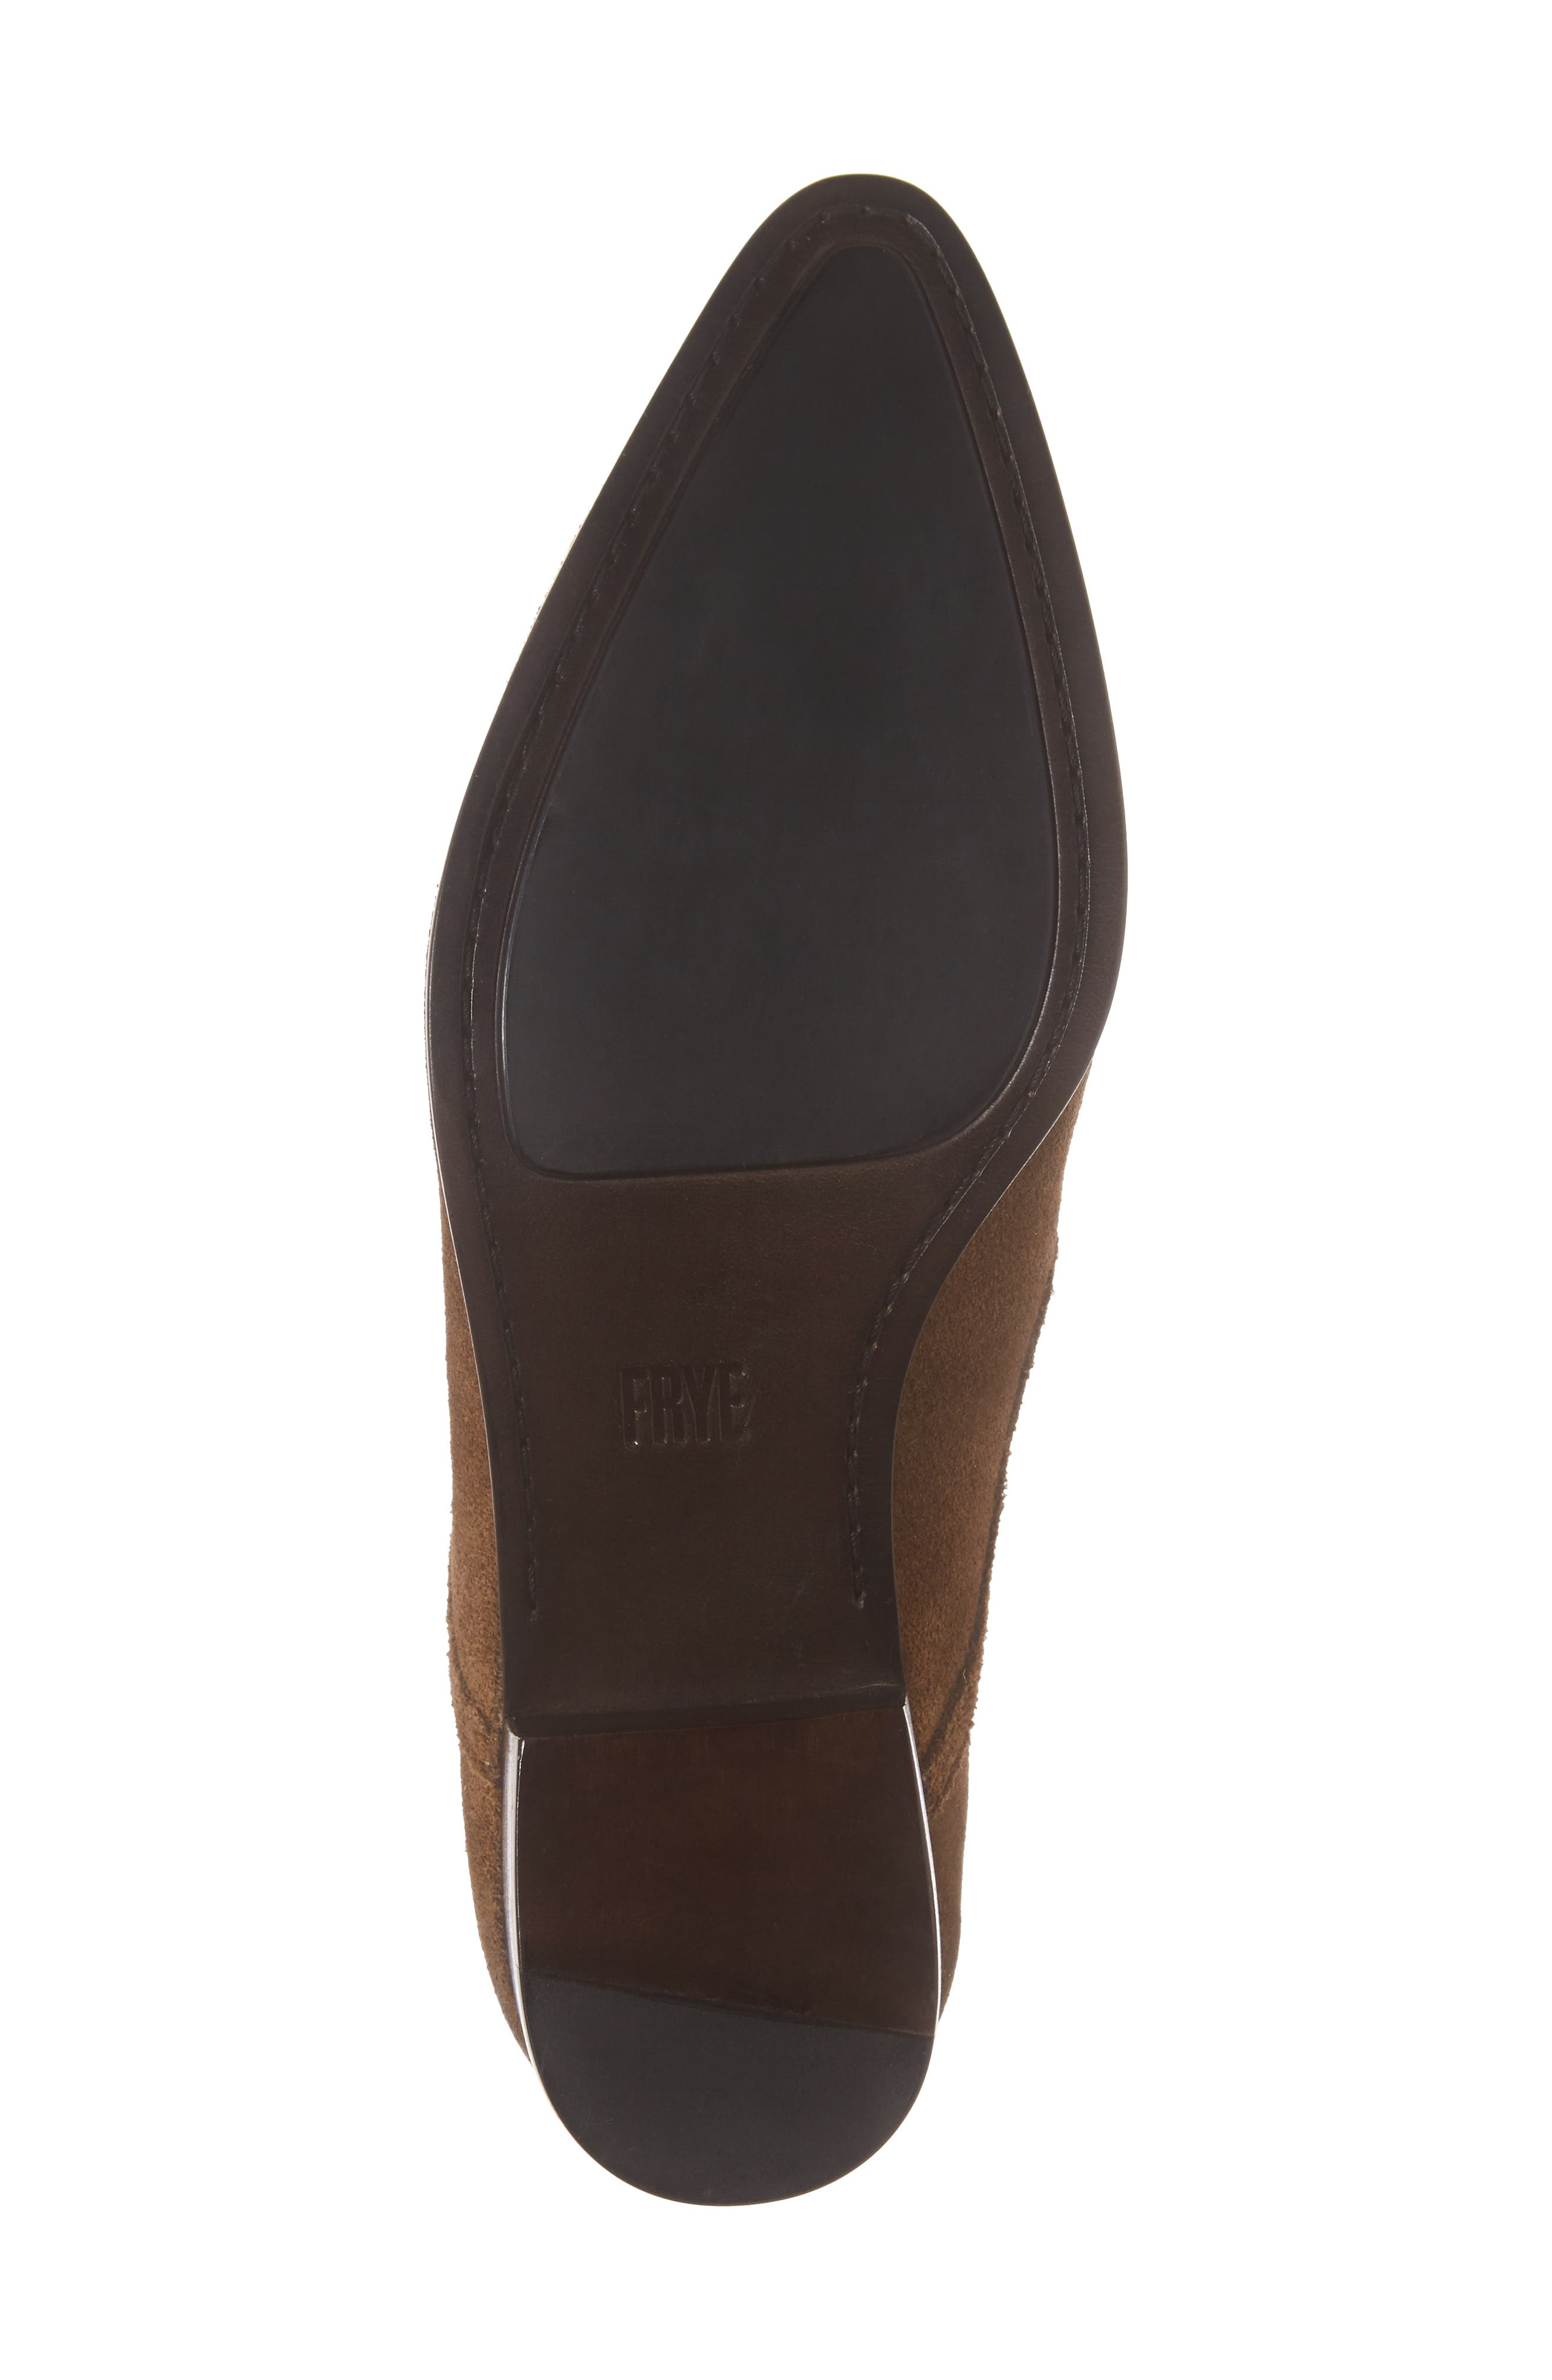 Eleanor Pointy Toe Bootie,                             Alternate thumbnail 6, color,                             Chestnut